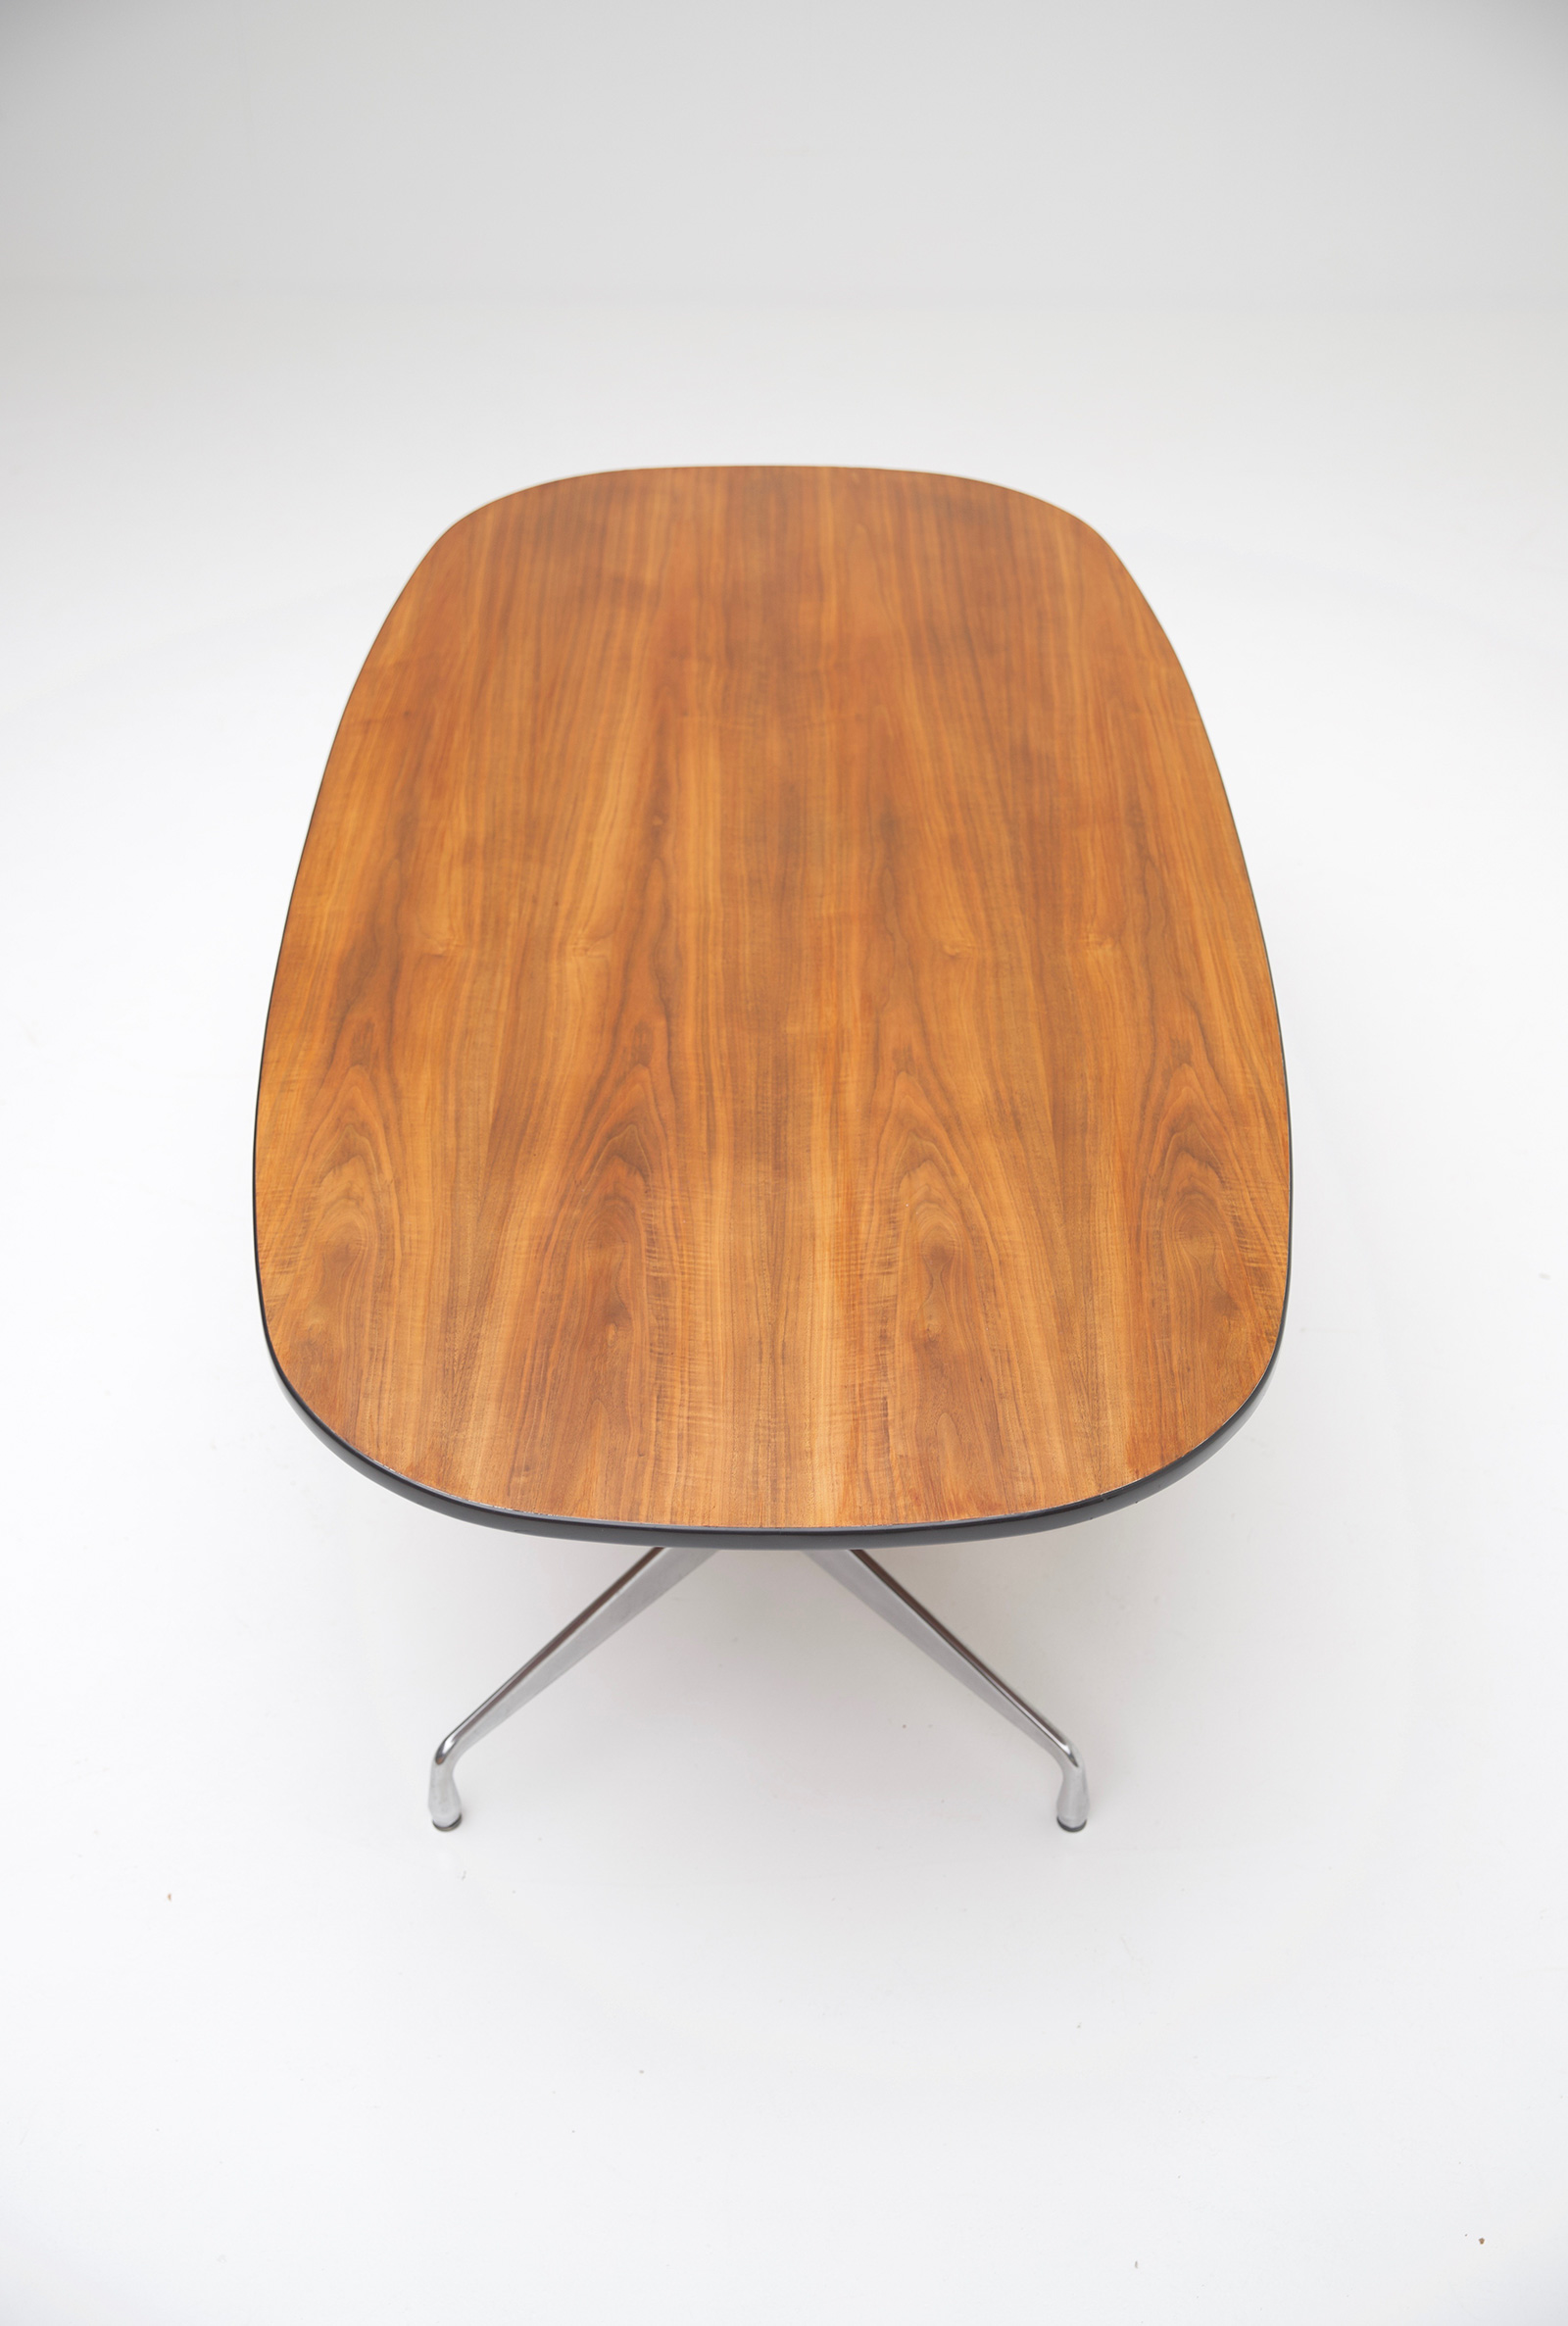 Eames Segmented Table Herman Millerimage 5